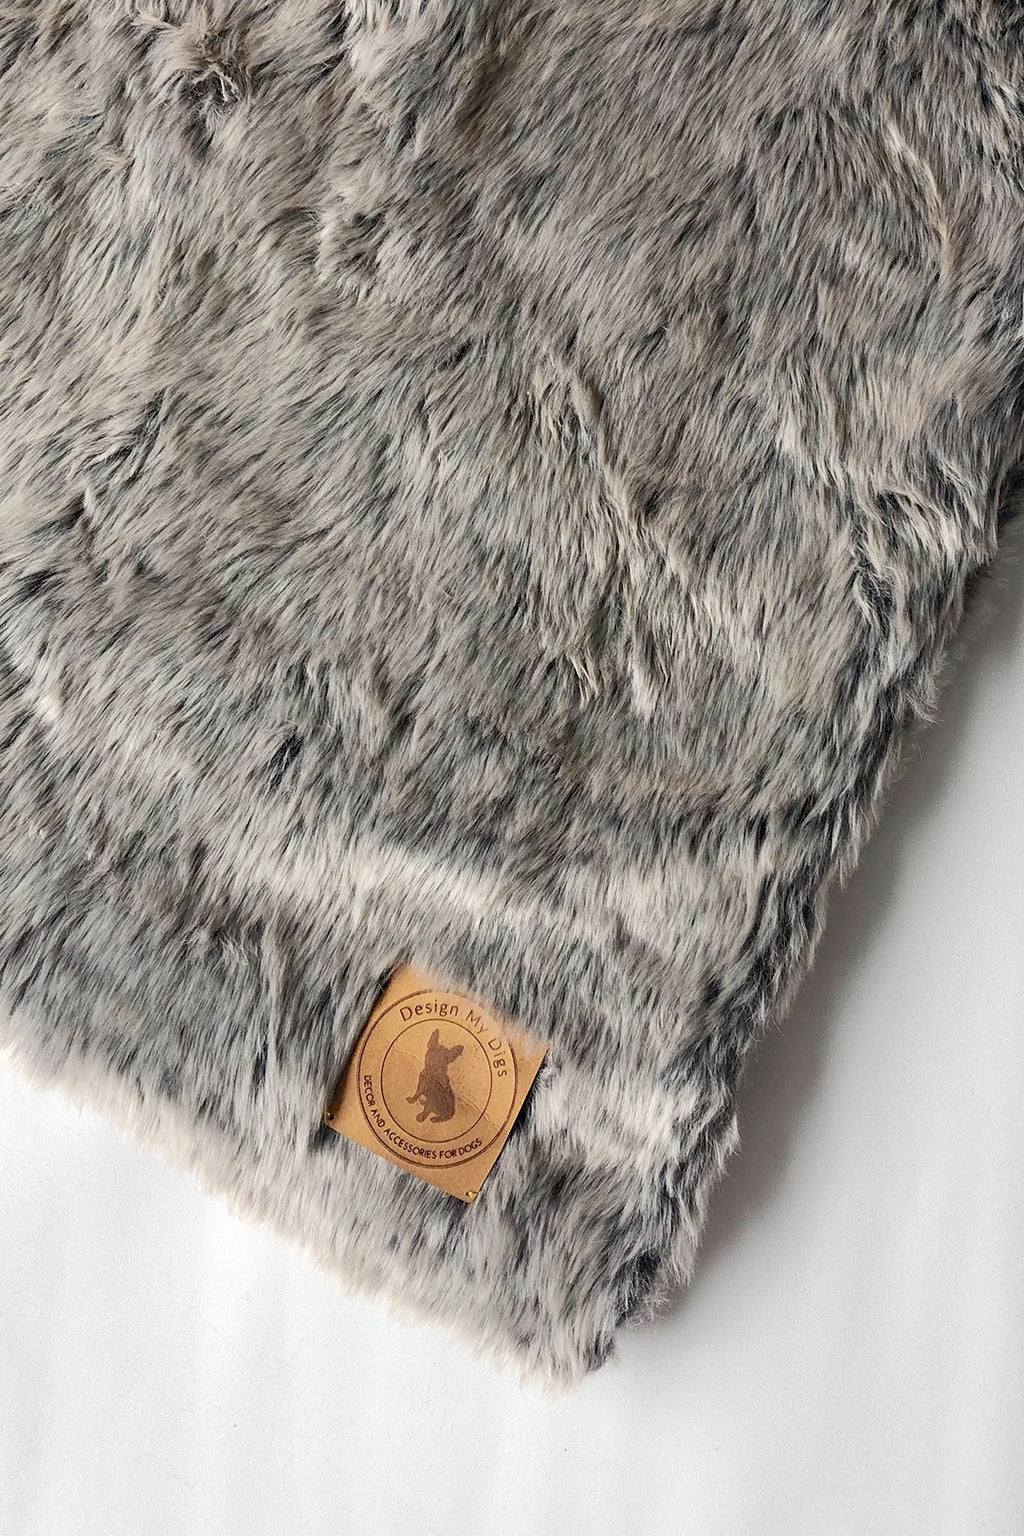 Grey Faux Fur Throw - Dog Beds and Dog Houses Online Australia - Design My Digs